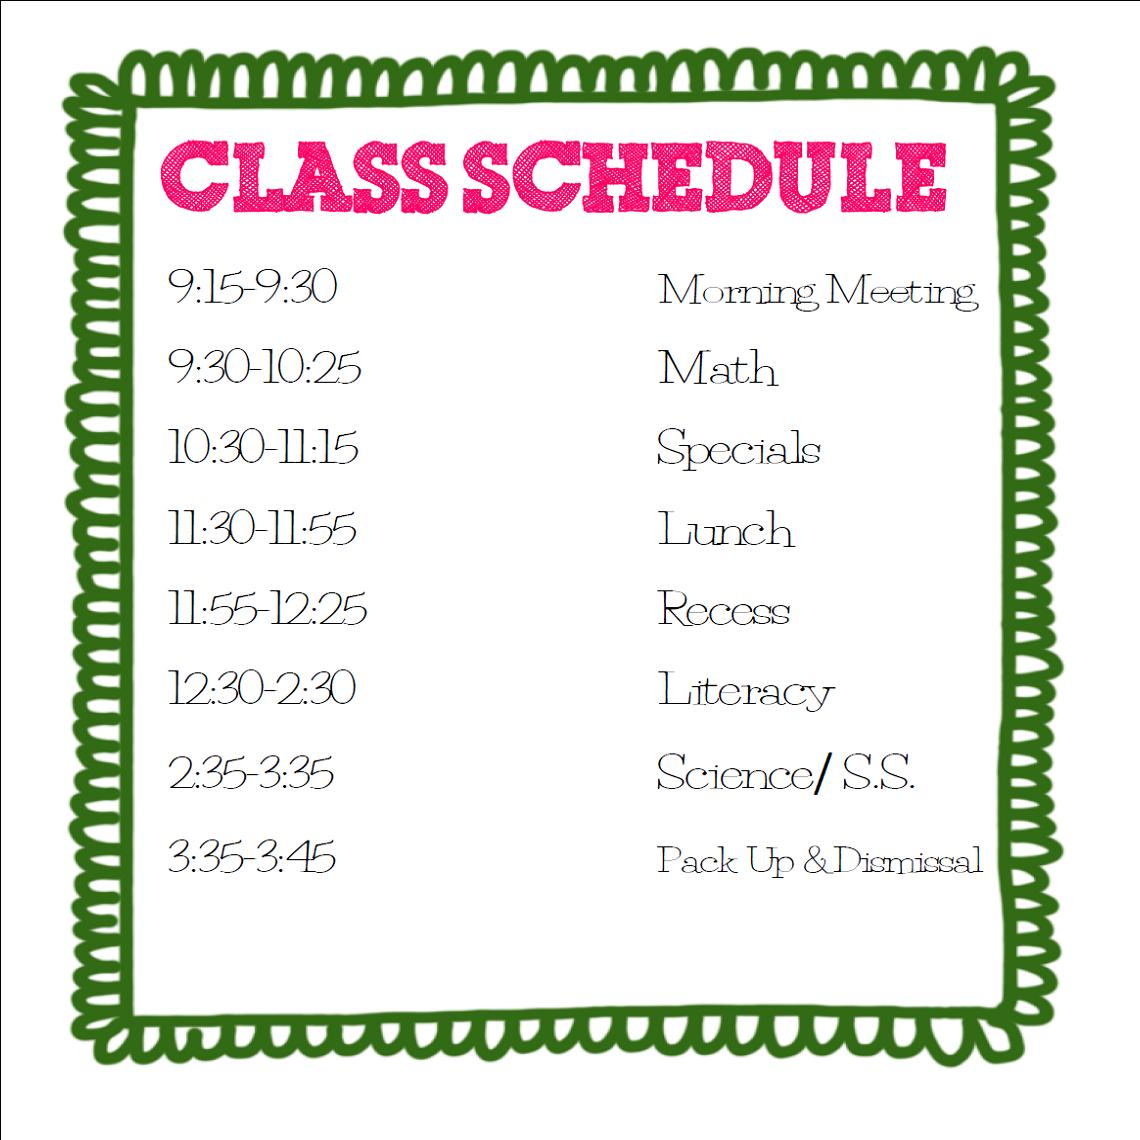 5th Grade at a Glance: Class Schedule for 2012-2013